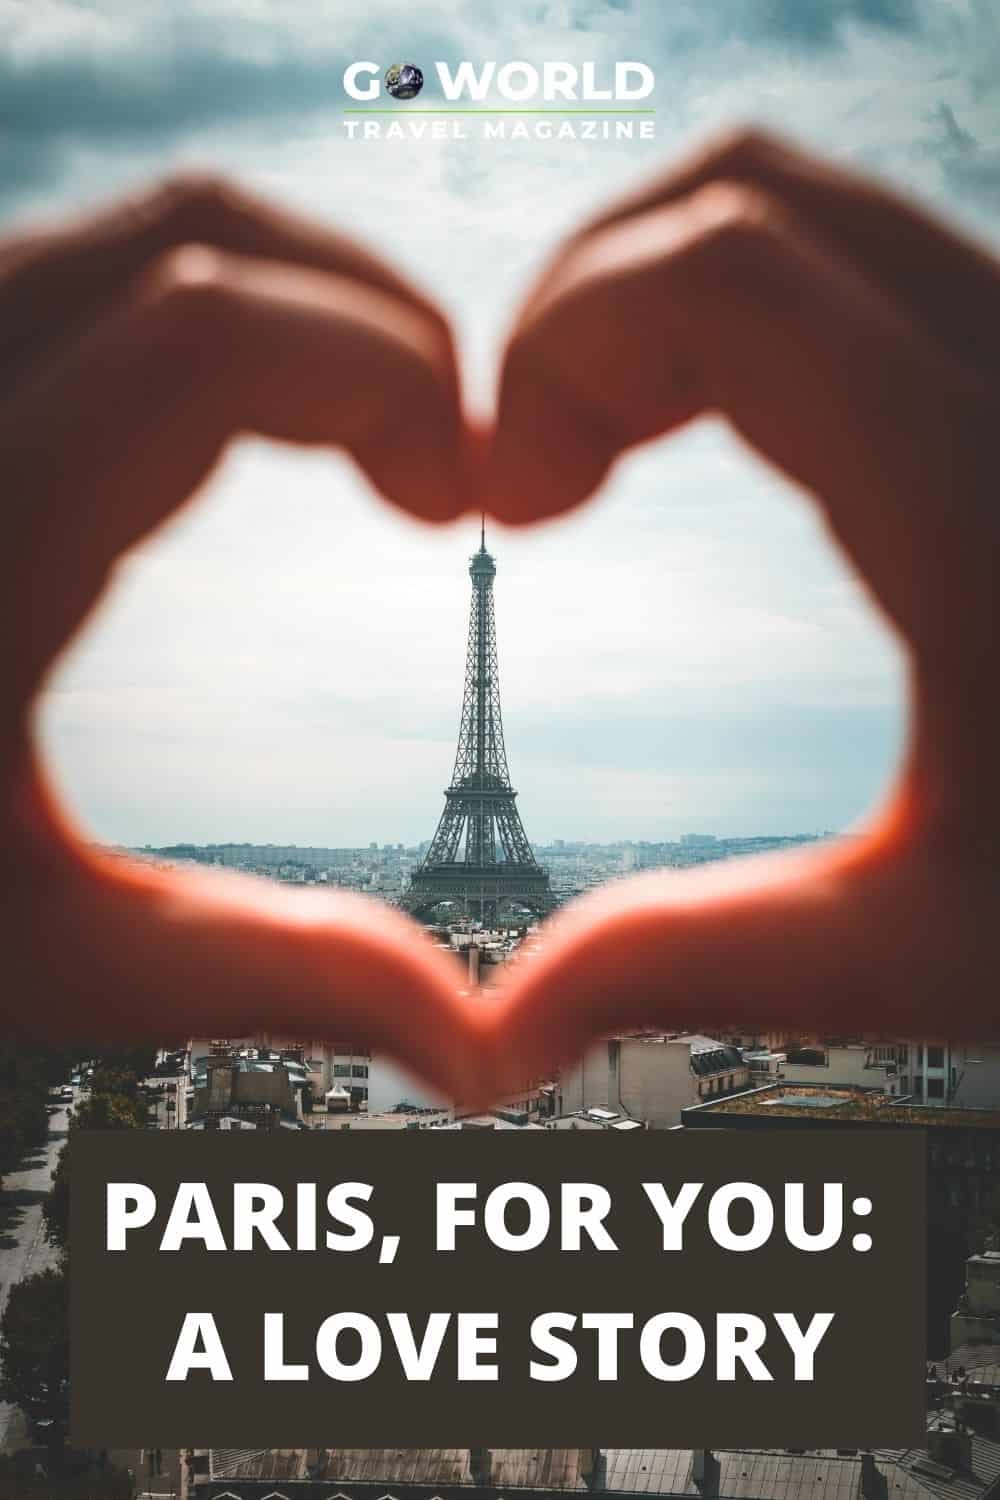 Paris, as seen through the eyes of a reluctant visitor determined not to fall in love. Will he succeed or will he succumb to her charms? #Paris